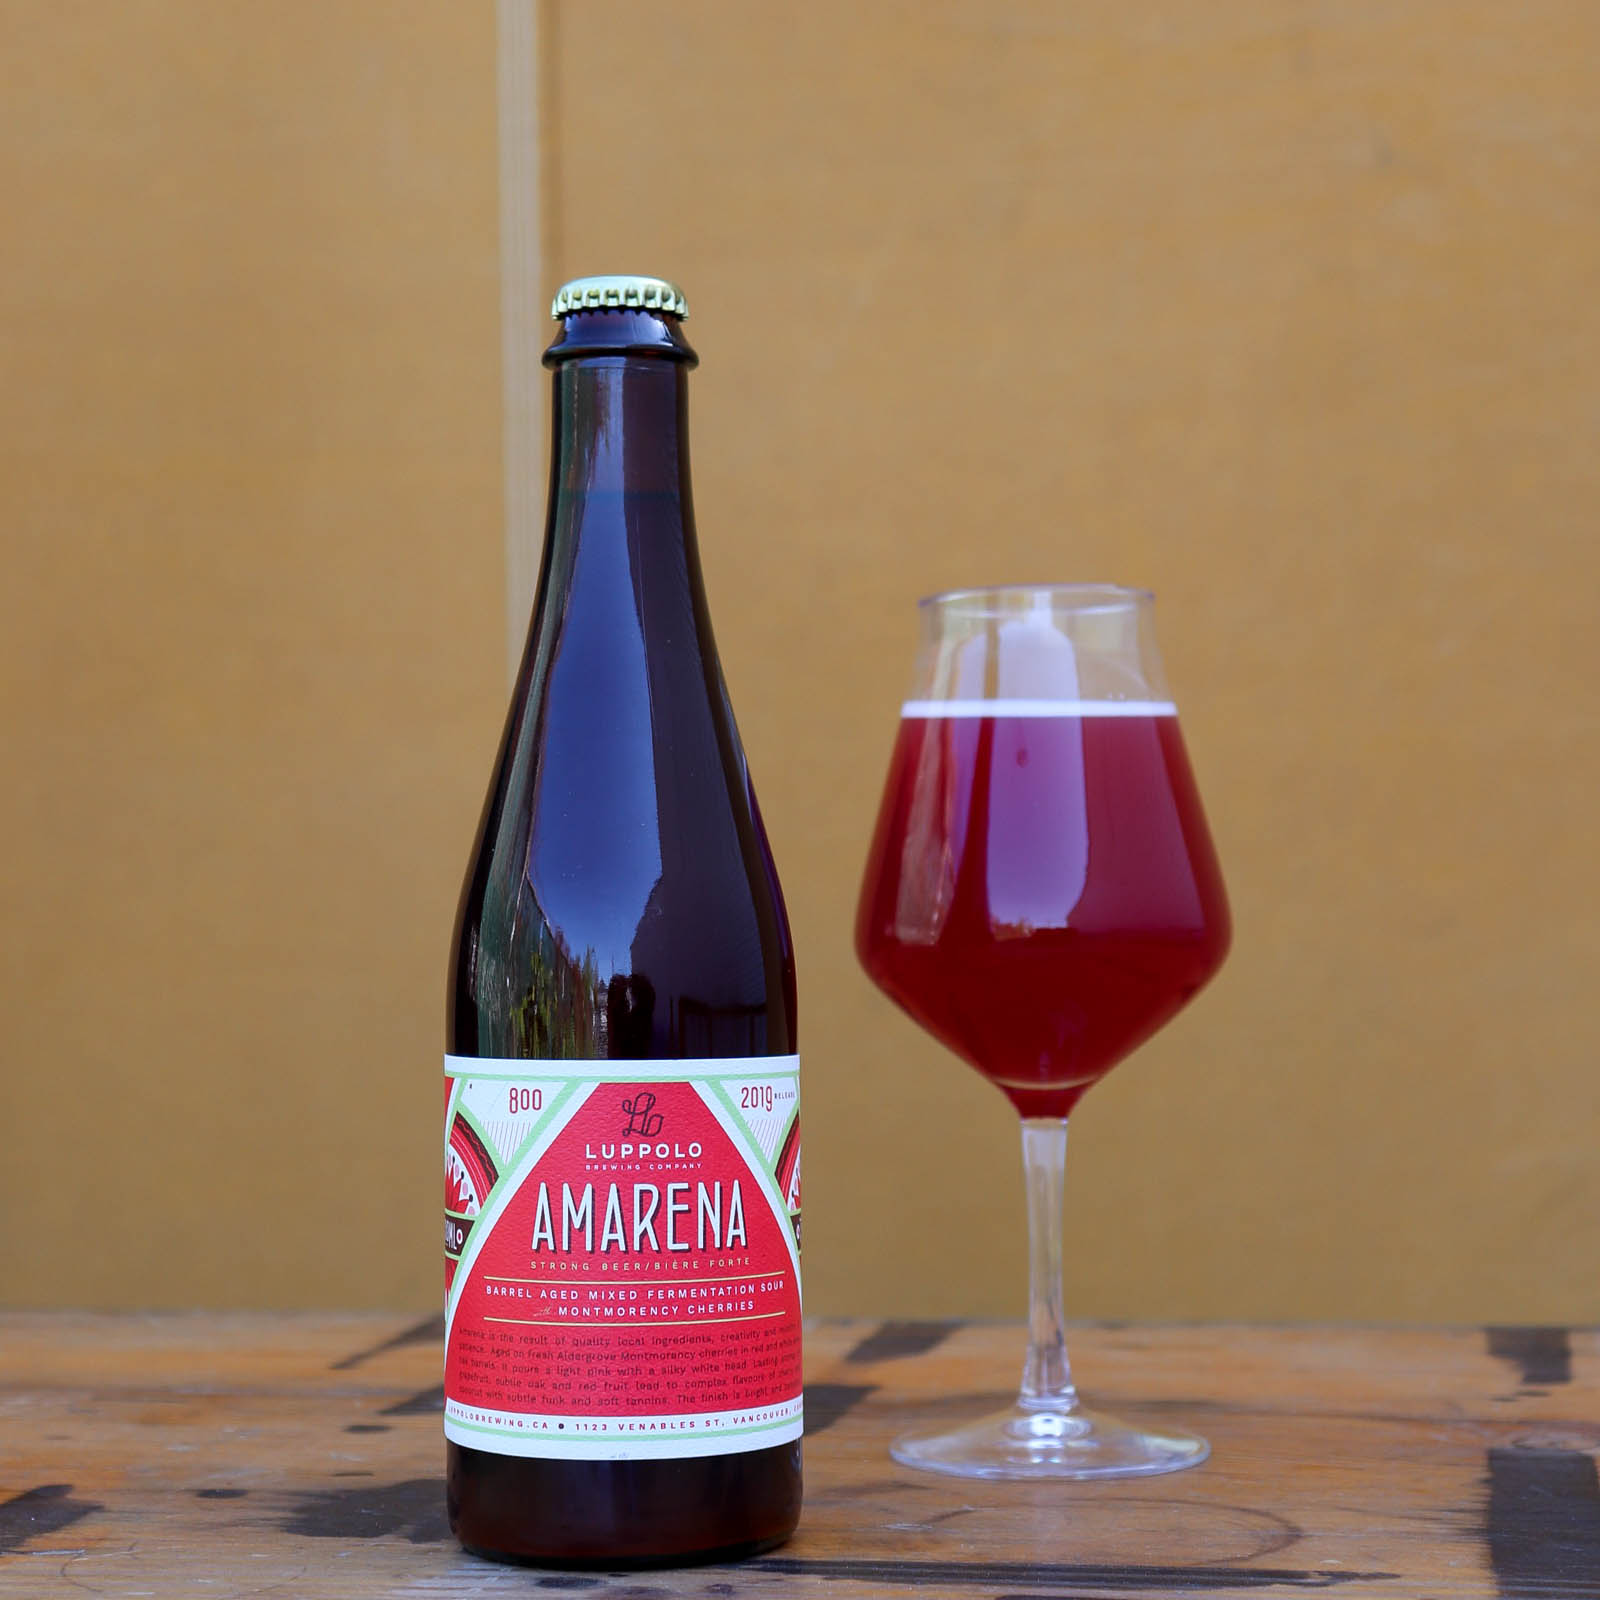 Amarena Barrel Aged Mixed Fermentation Sour with Cherries